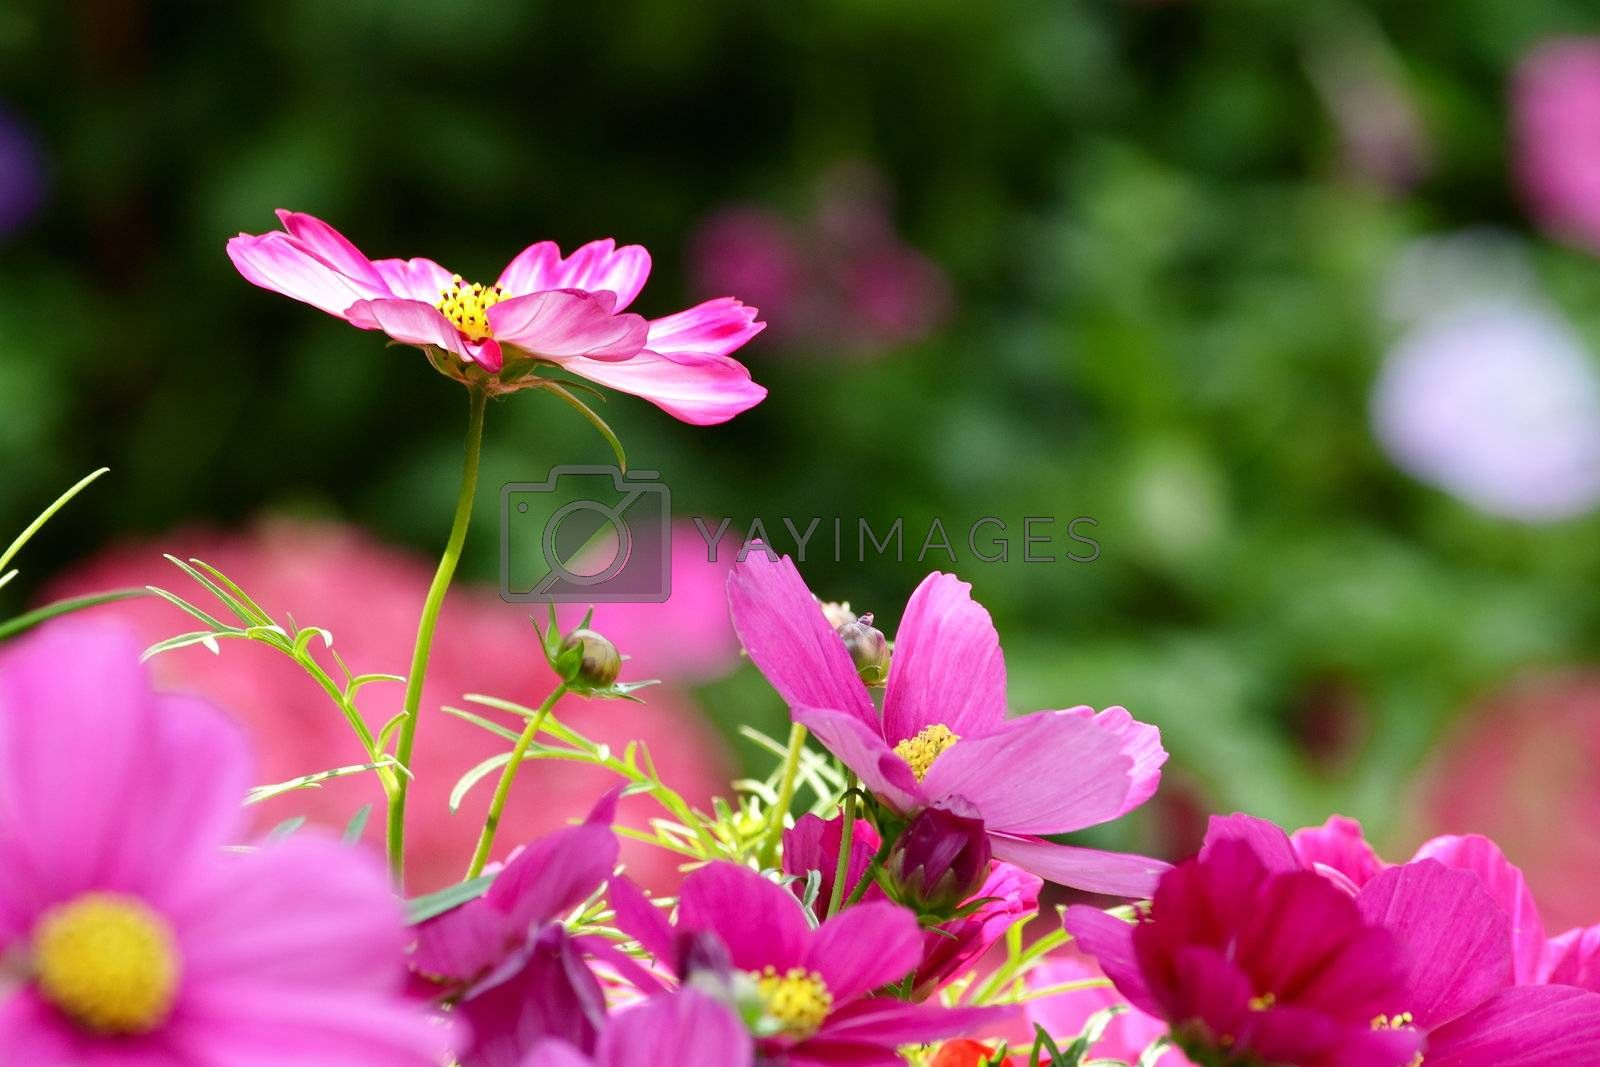 Cosmos Flower by leungchopan